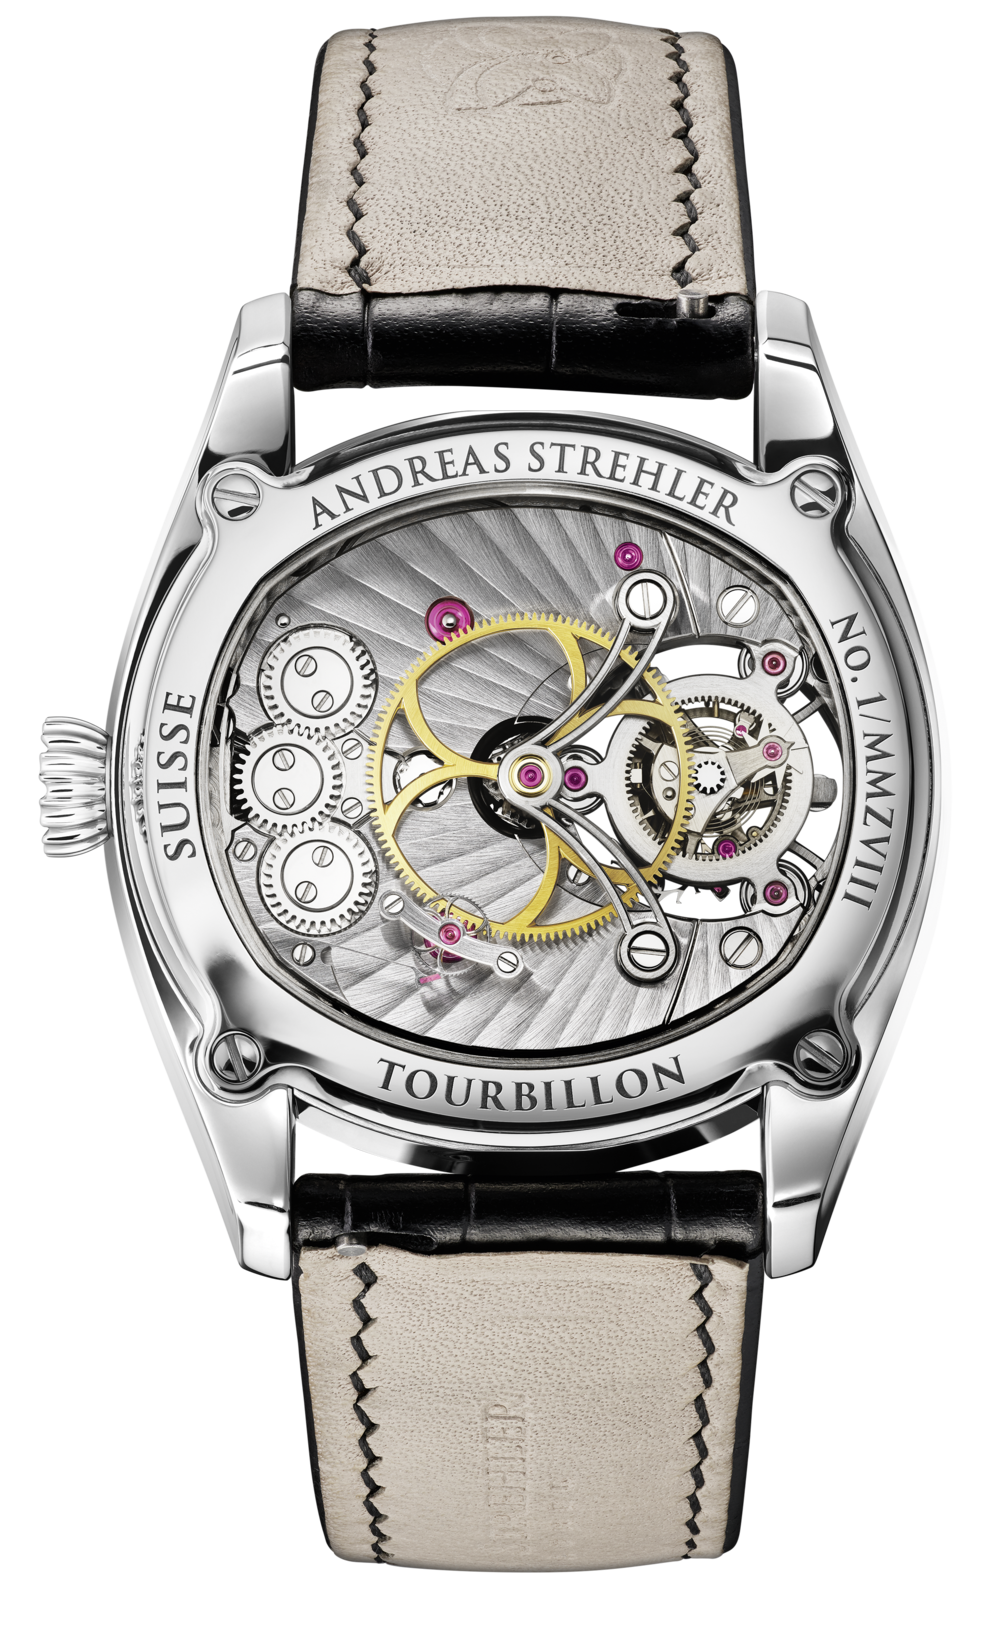 Tourbillon back WEB eciRGBv2.png